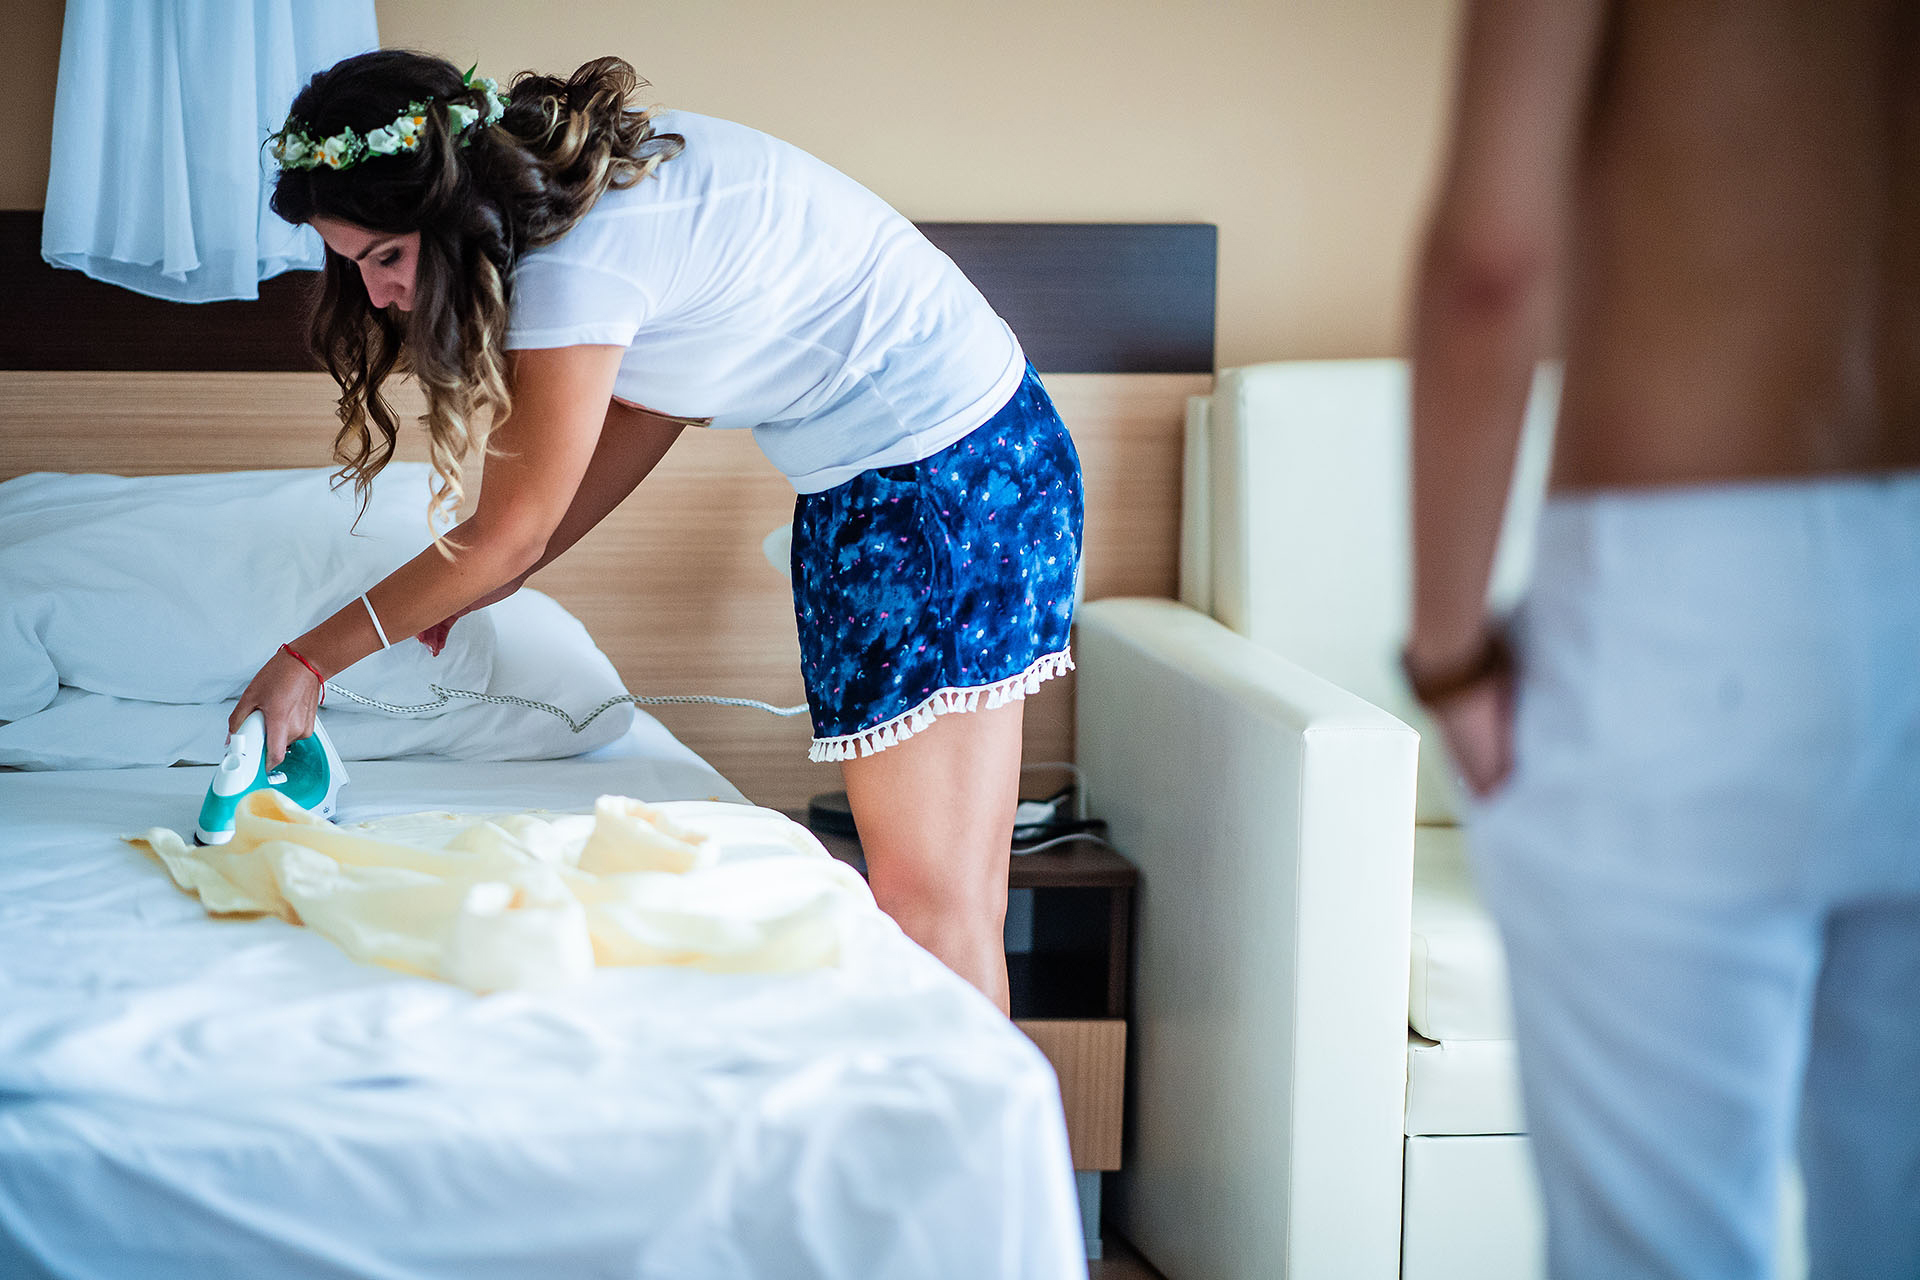 Sozopol, Bulgaria Elopement Image | The bride touches up the groom's wedding shirt with a steam iron